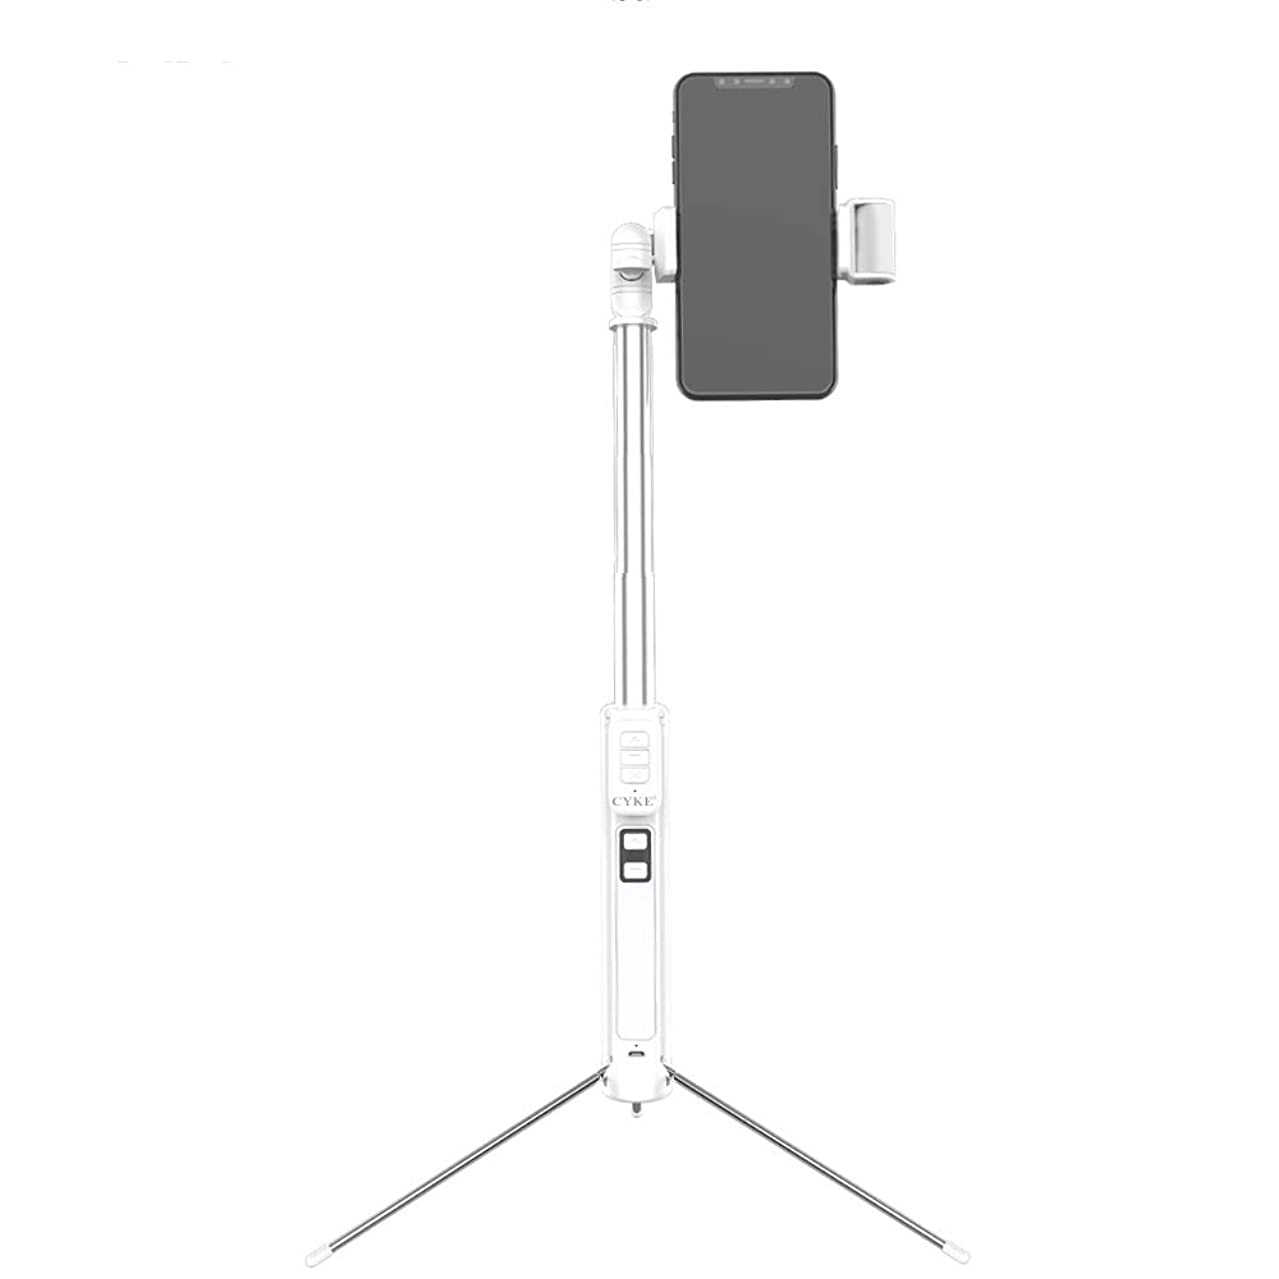 Bluetooth Selfie Stick Tripod Extendable Monopod Phone Holer with LED Fill-in Light Wireless Remote Control for iPhone X /8/8 Plus/7/7 Plus/Galaxy S9/S9 Plus/Note 8/S8/S8 Plus (63 inches) (White)